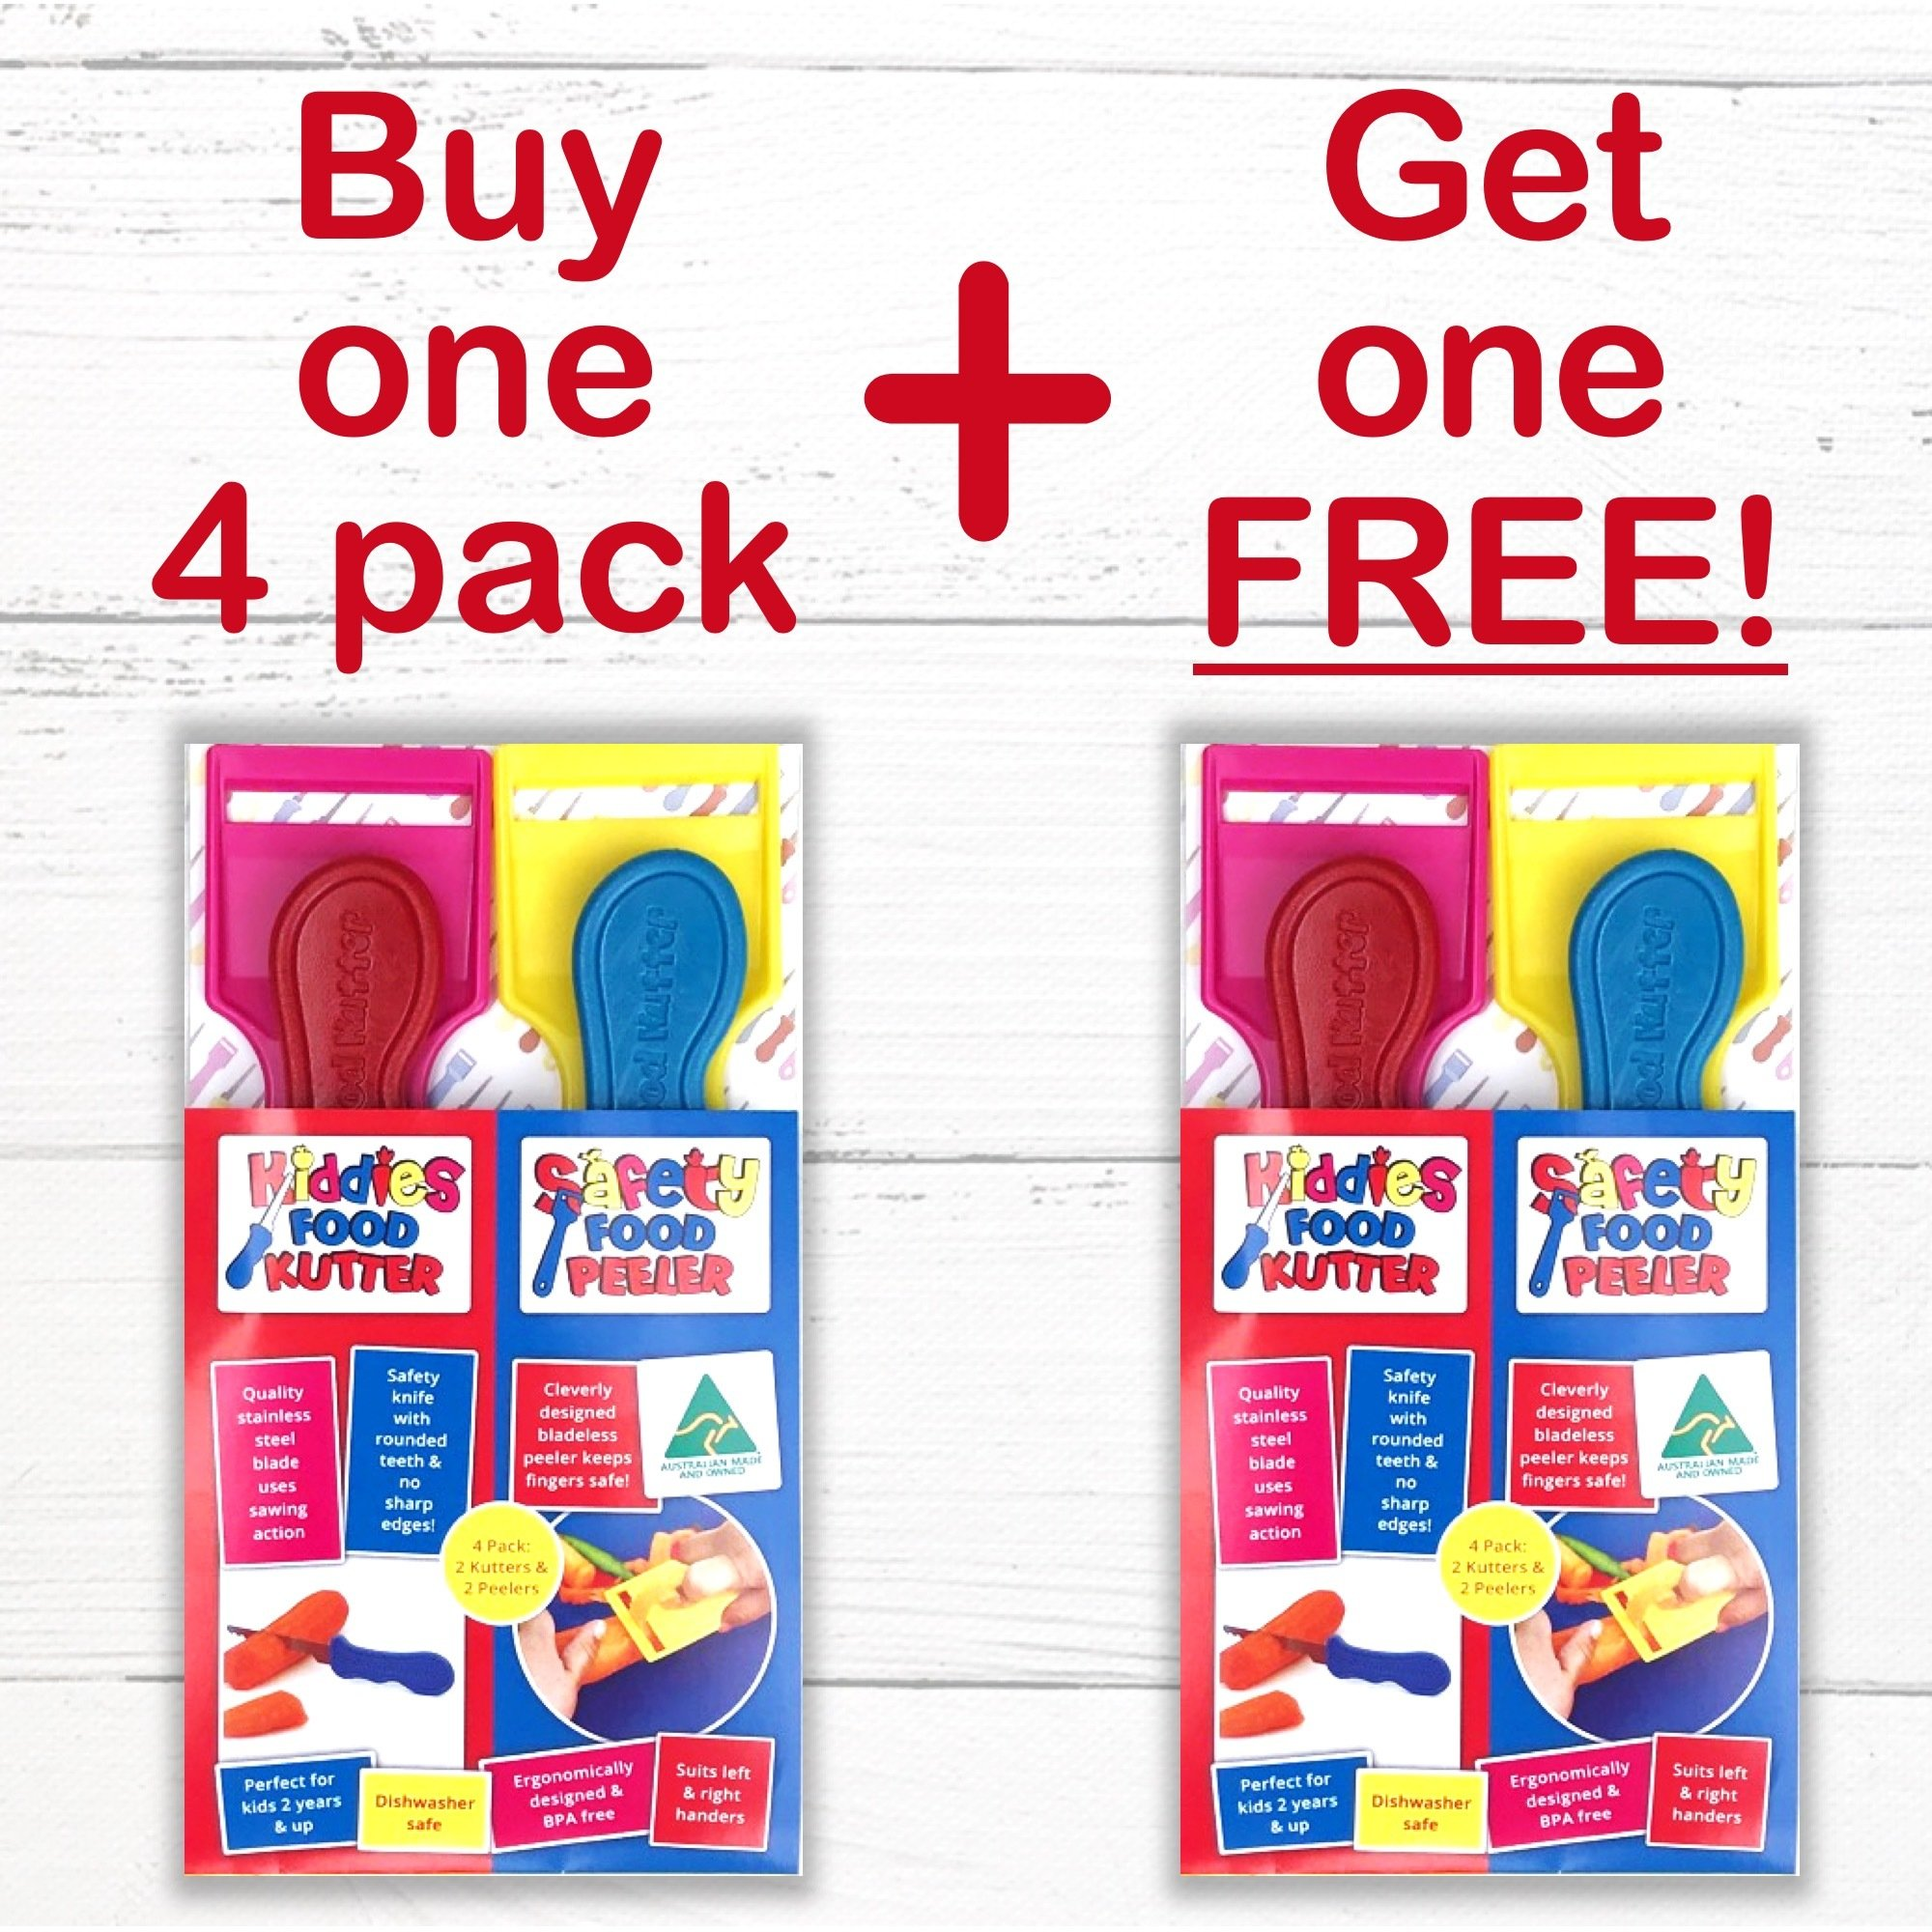 *Xmas Promo* Buy 1 x 4 Pack get another FREE! Xmas Promo BOGOF - 4 Pack